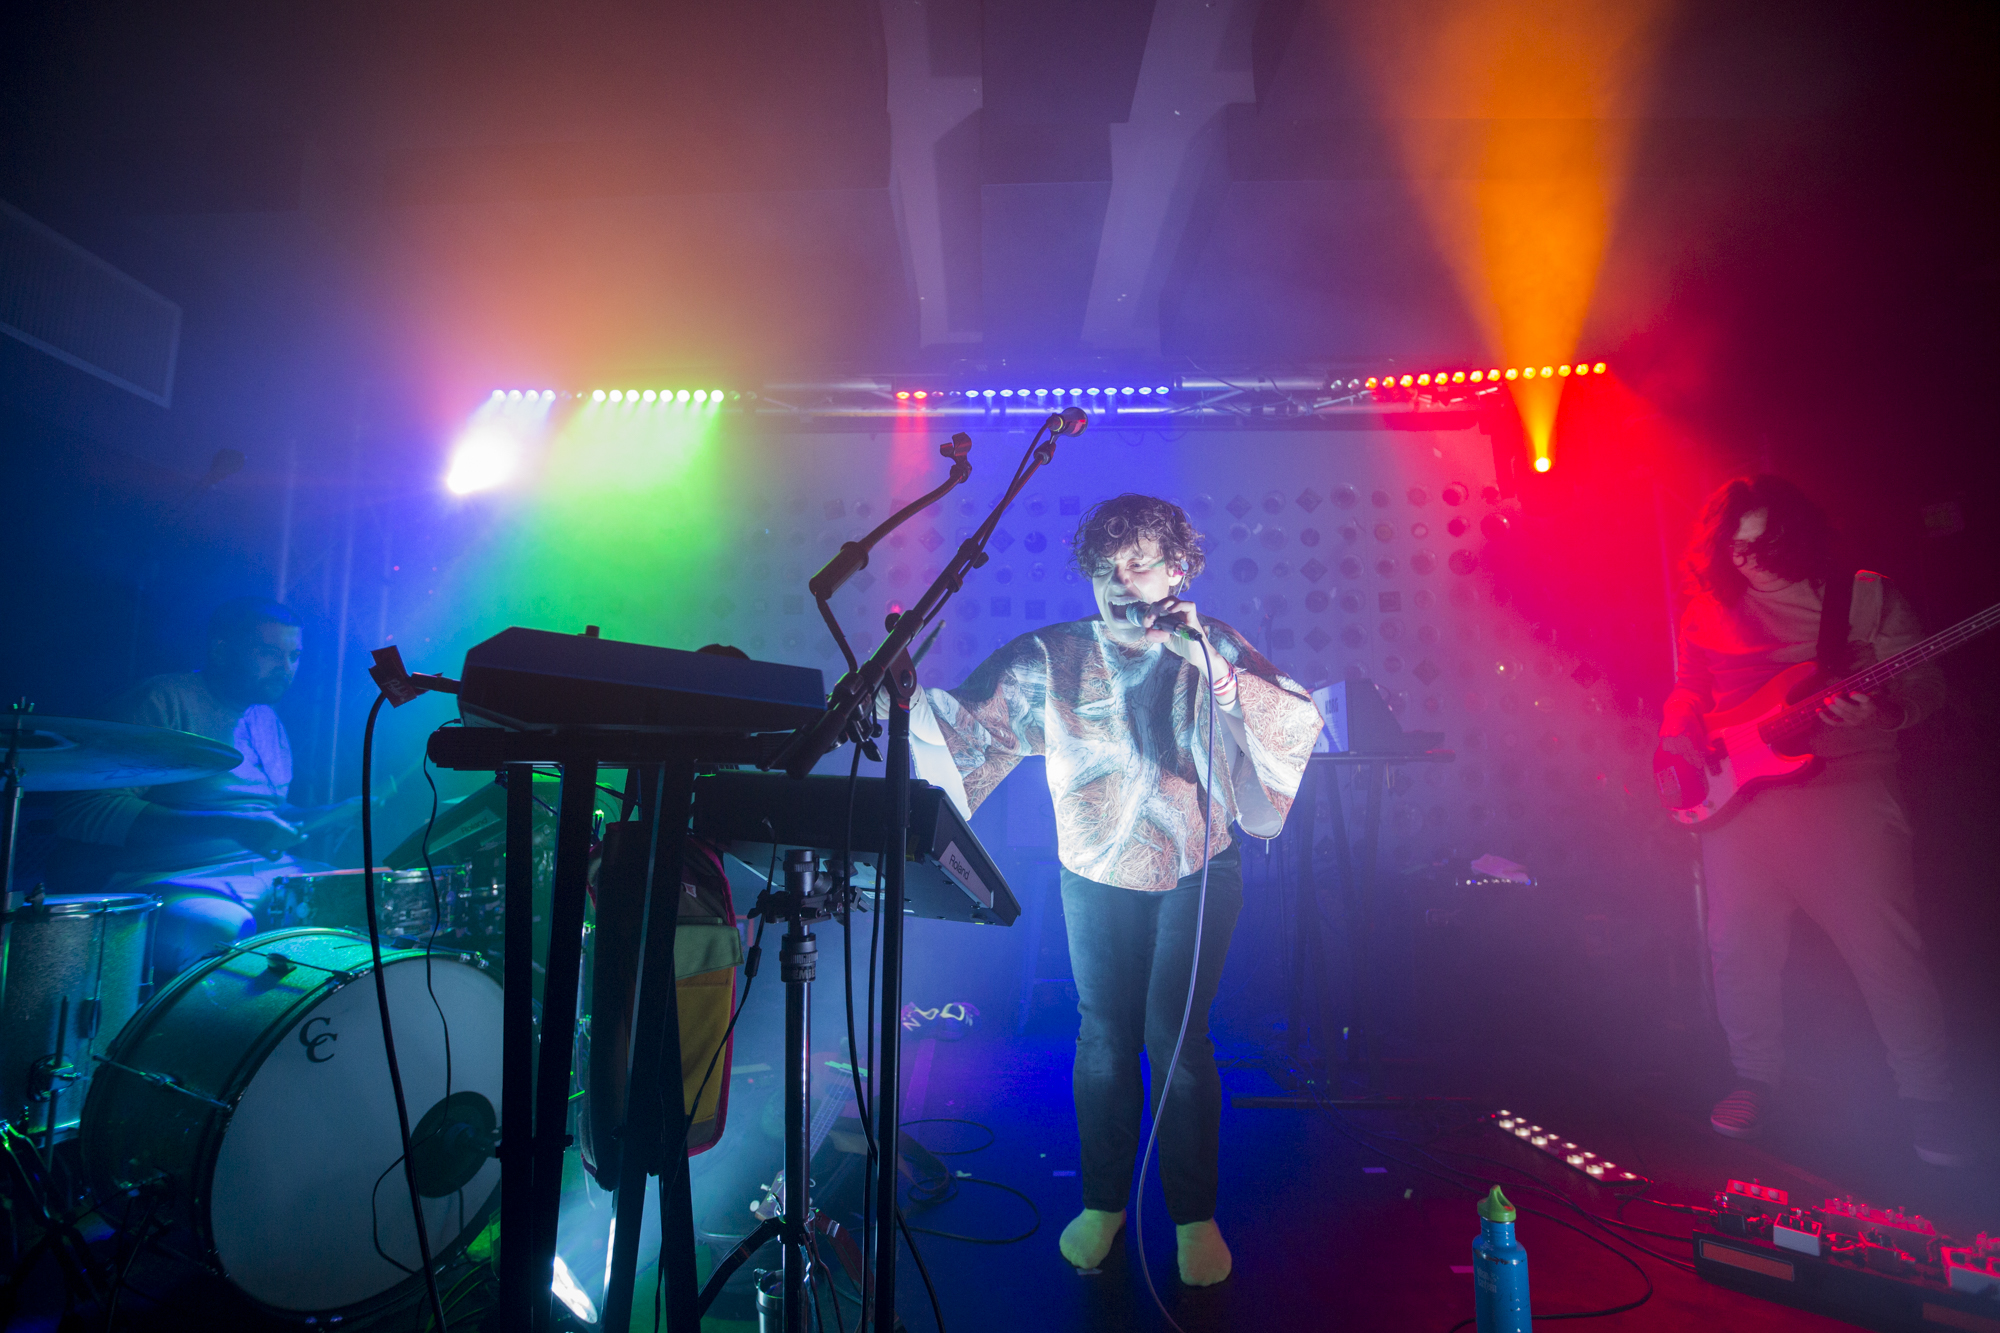 Tune-Yards plays at Baby's All Right in Williamsburg, Brooklyn, New York on Nov. 7, 2017. (© Michael Katzif - Do not use or republish without prior consent.)